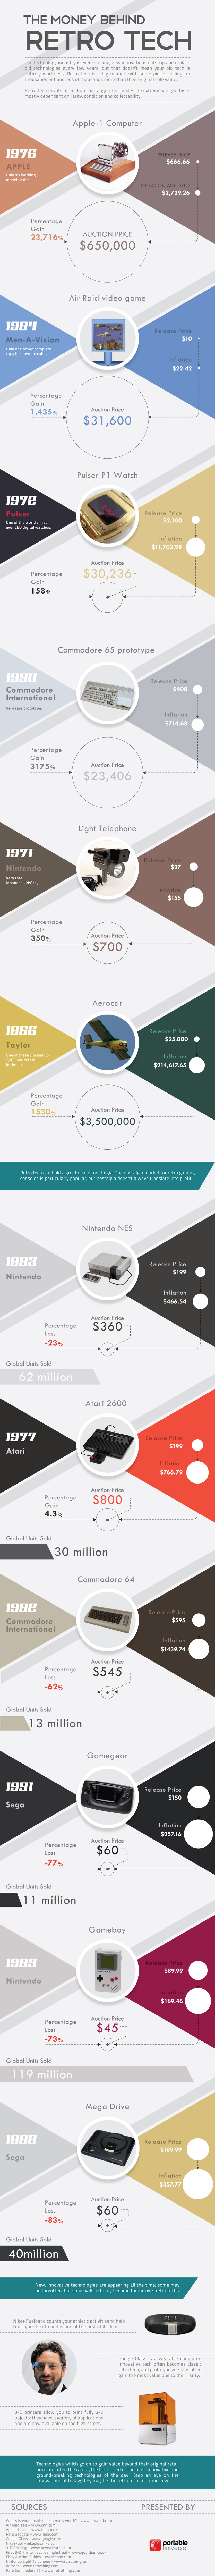 The Money behind Retro Tech Infographic